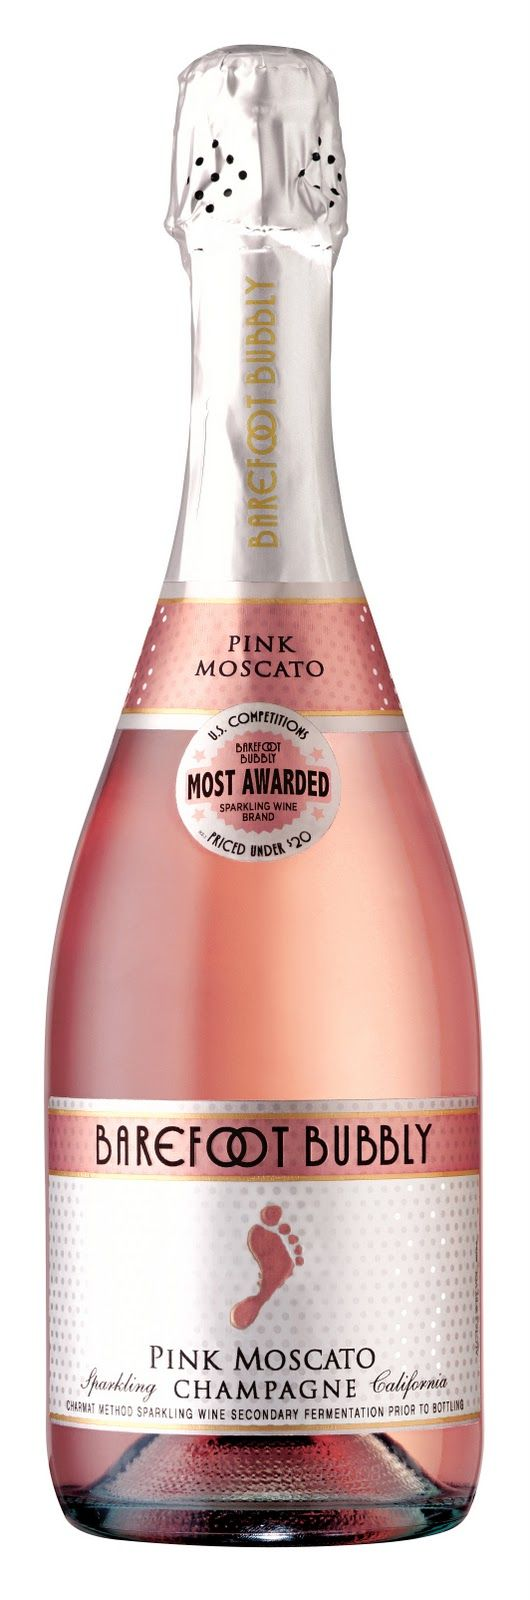 Pin by Linda Aleman on drinks   Pink moscato, Moscato, Bubbles